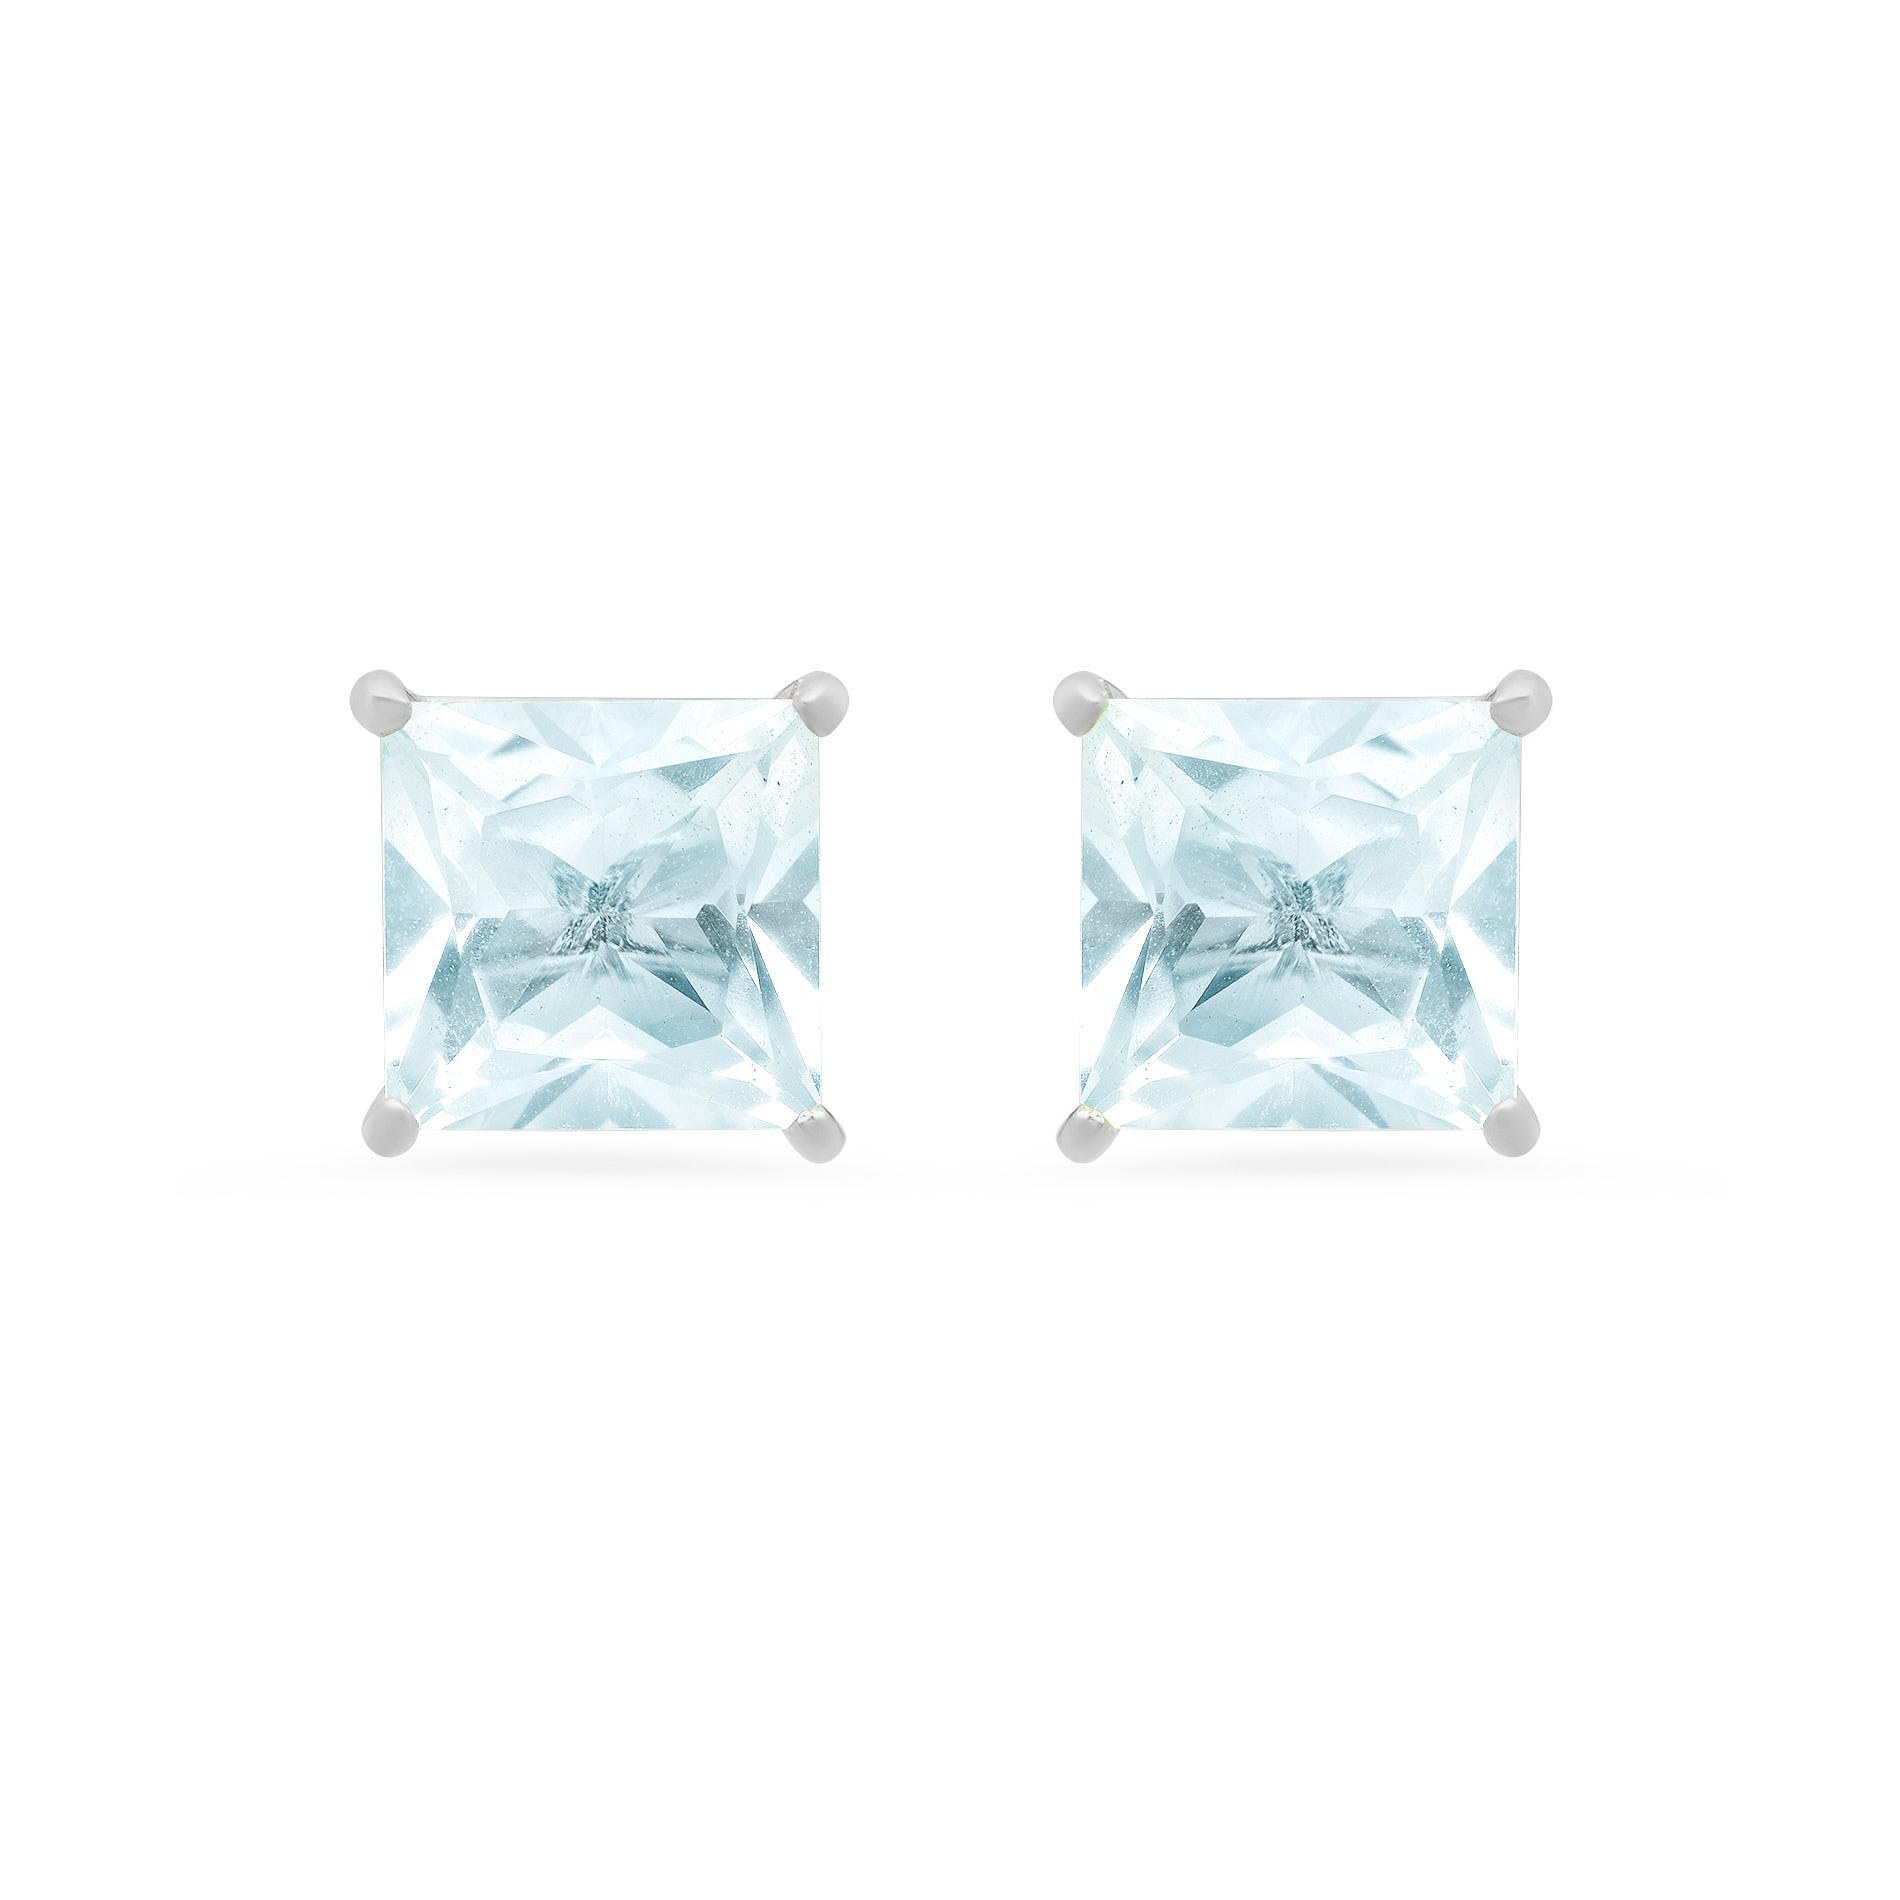 Princess-Cut Aquamarine Solitaire Stud Earrings in 14k White Gold